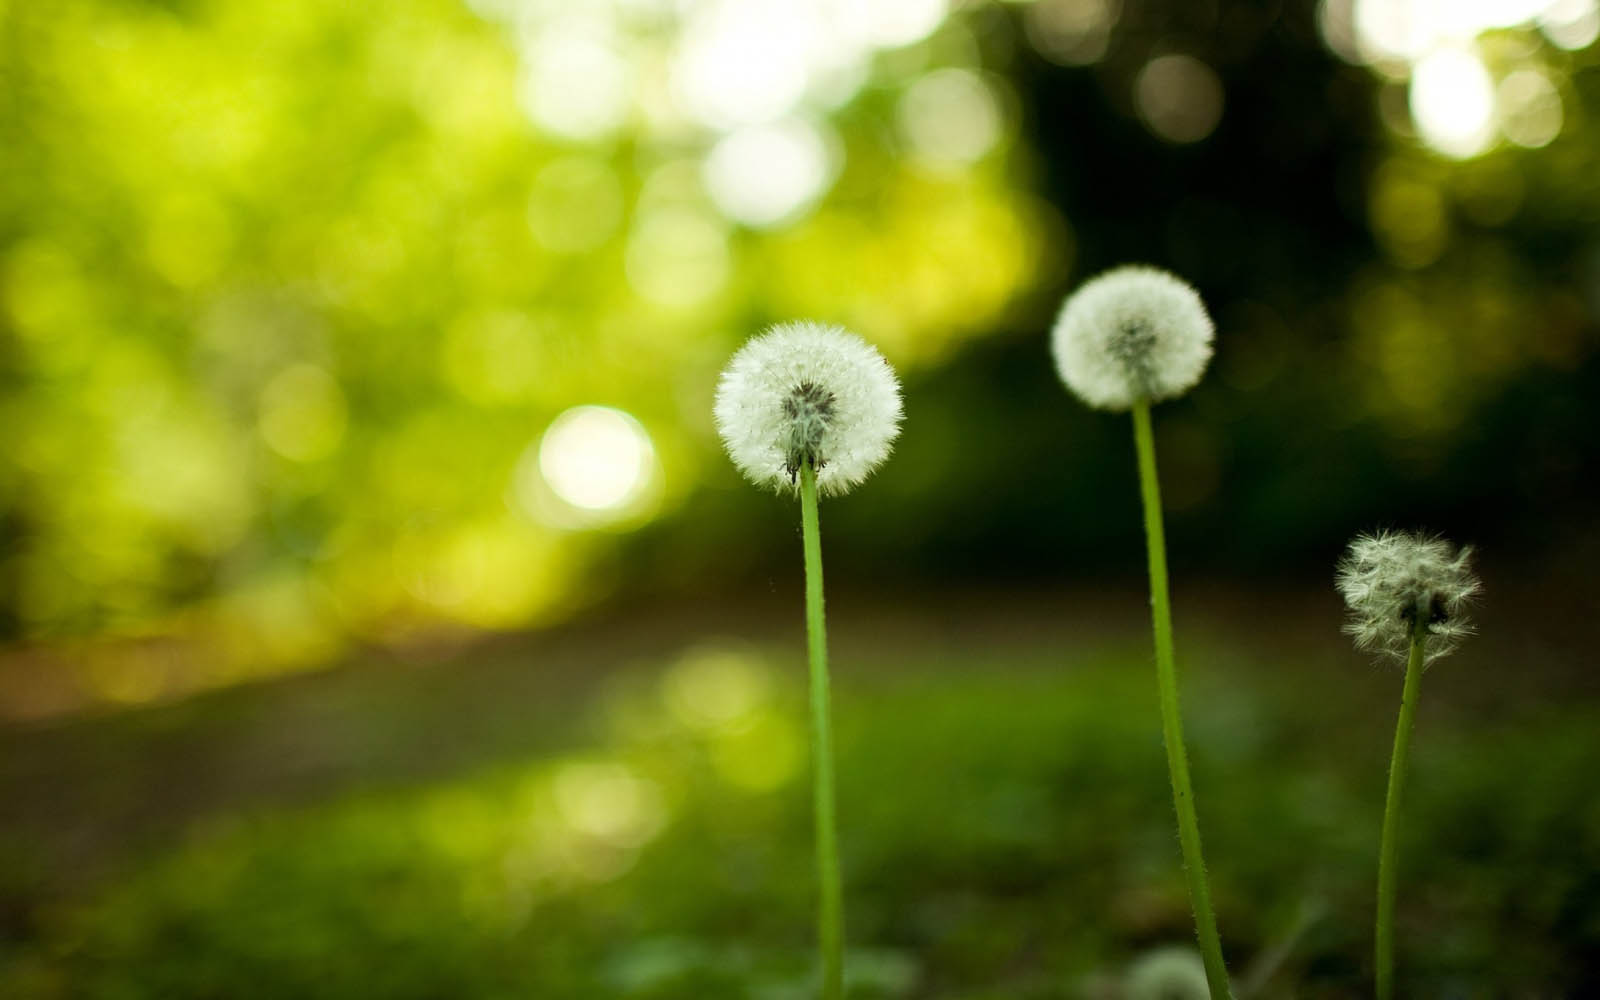 Desktop Wallpapers Dandelion Flowers Desktop Backgrounds 1600x1000